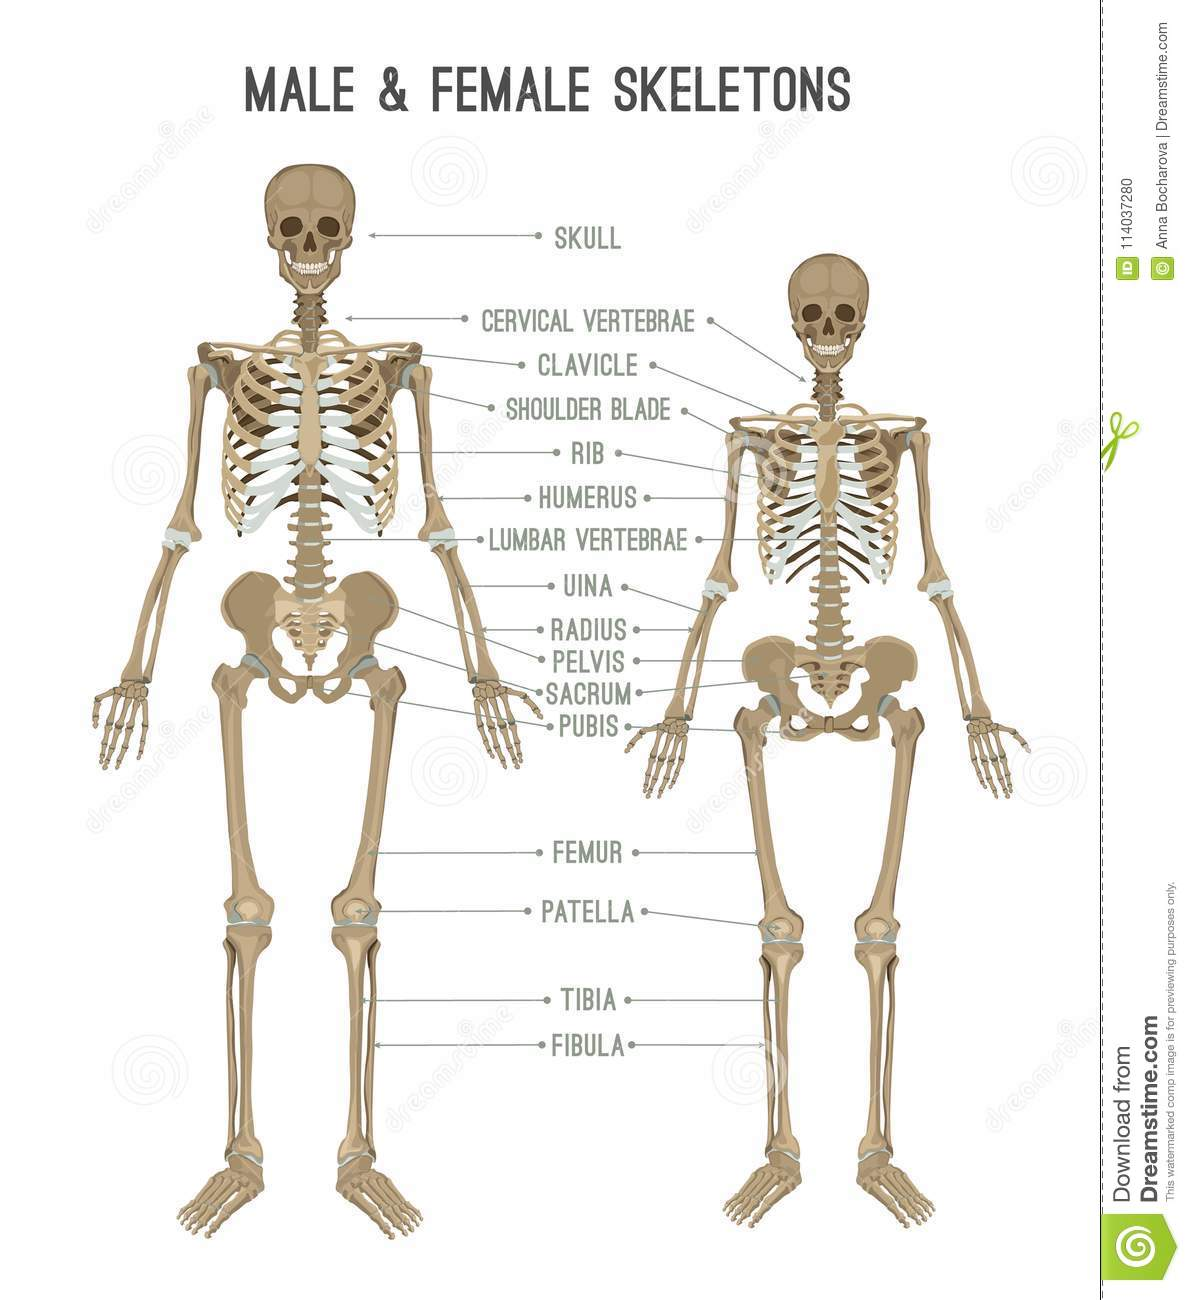 Female Skeleton Diagram Sacrum Electrical Drawing Wiring Diagram